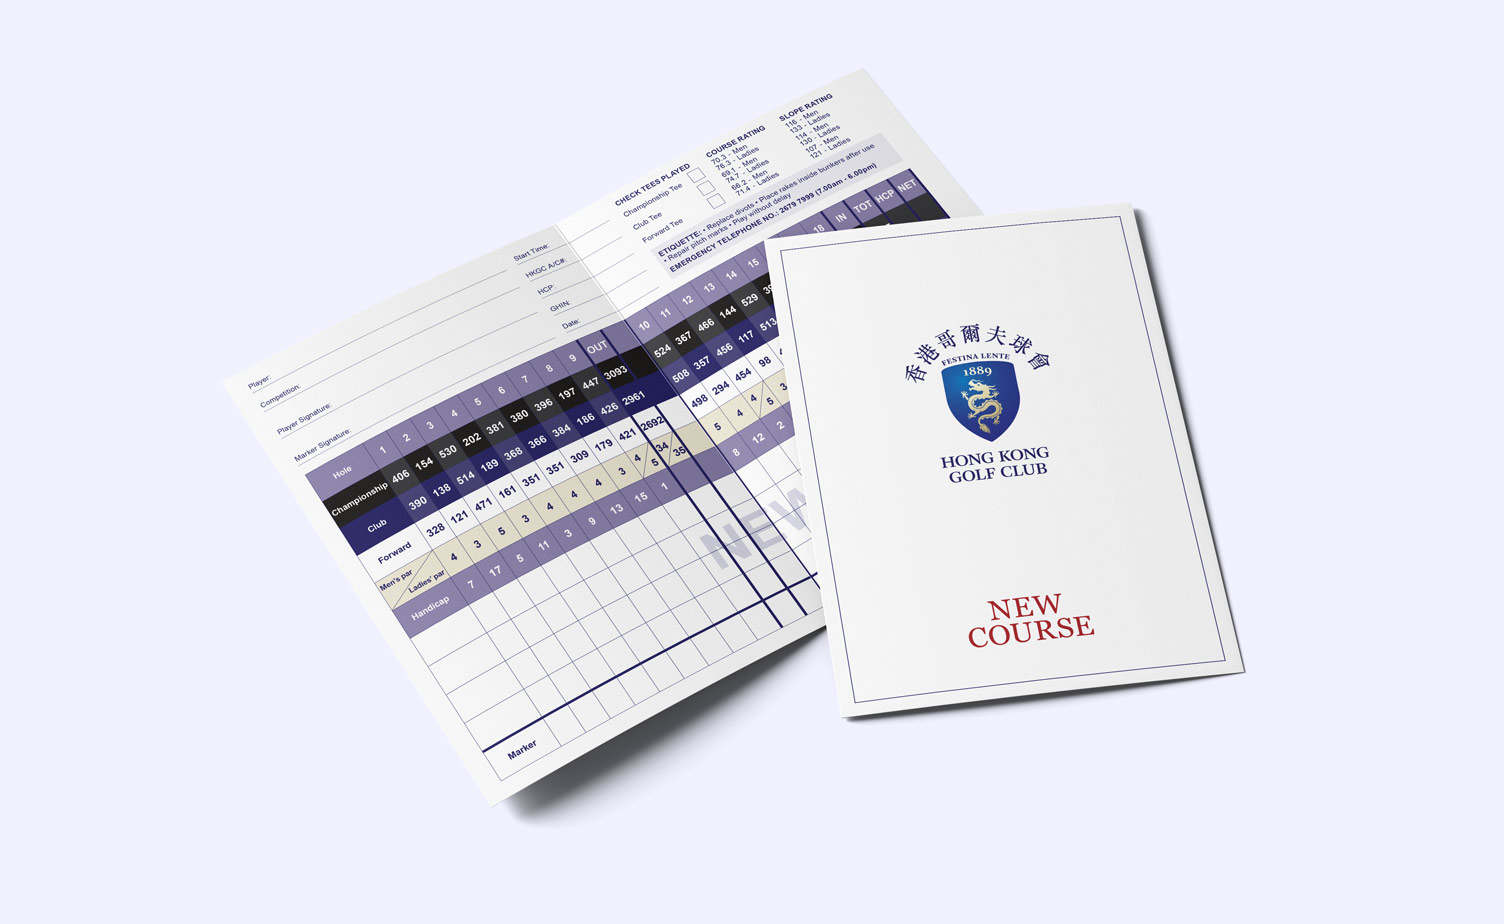 Golf Score Card New Course